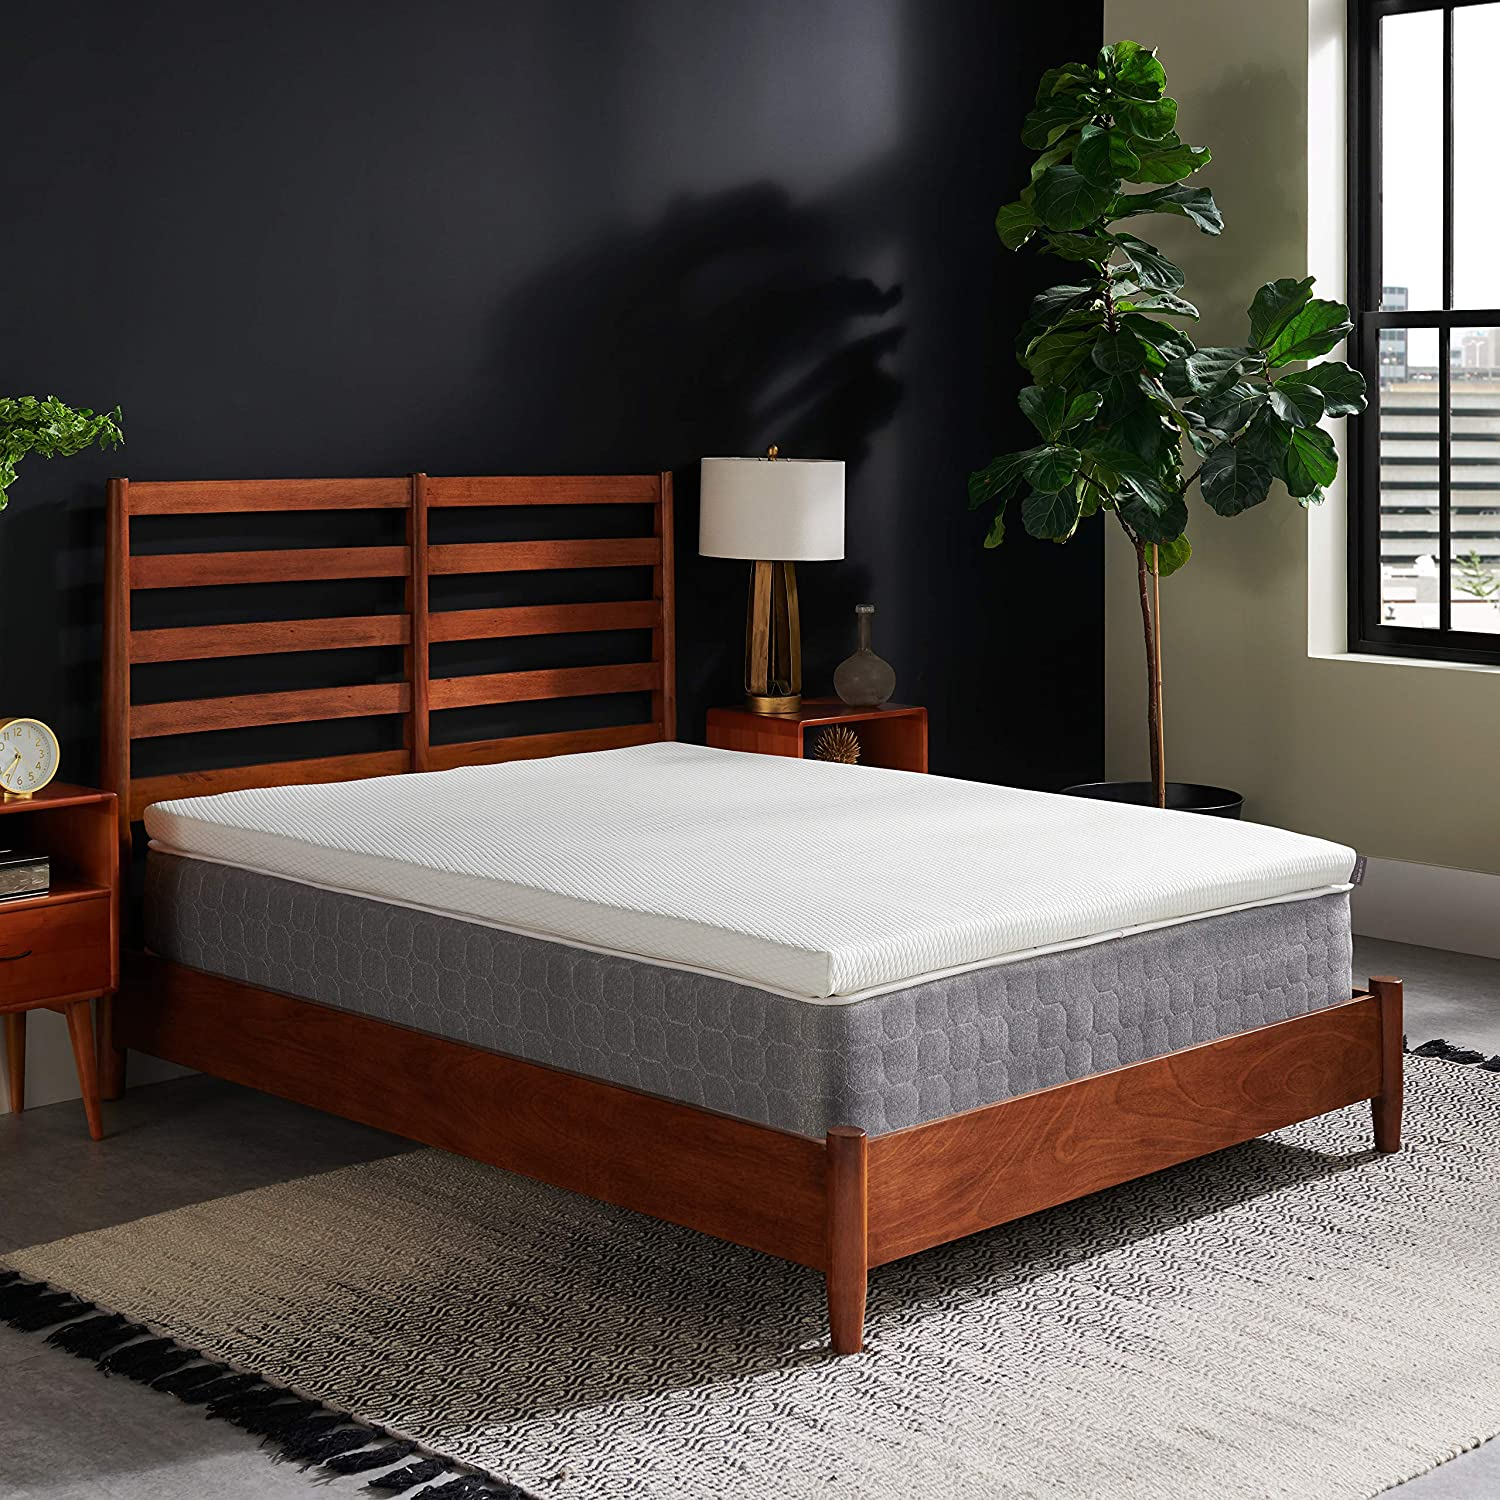 How To Keep Your Bed Cool in Summers - Without Air Conditioning